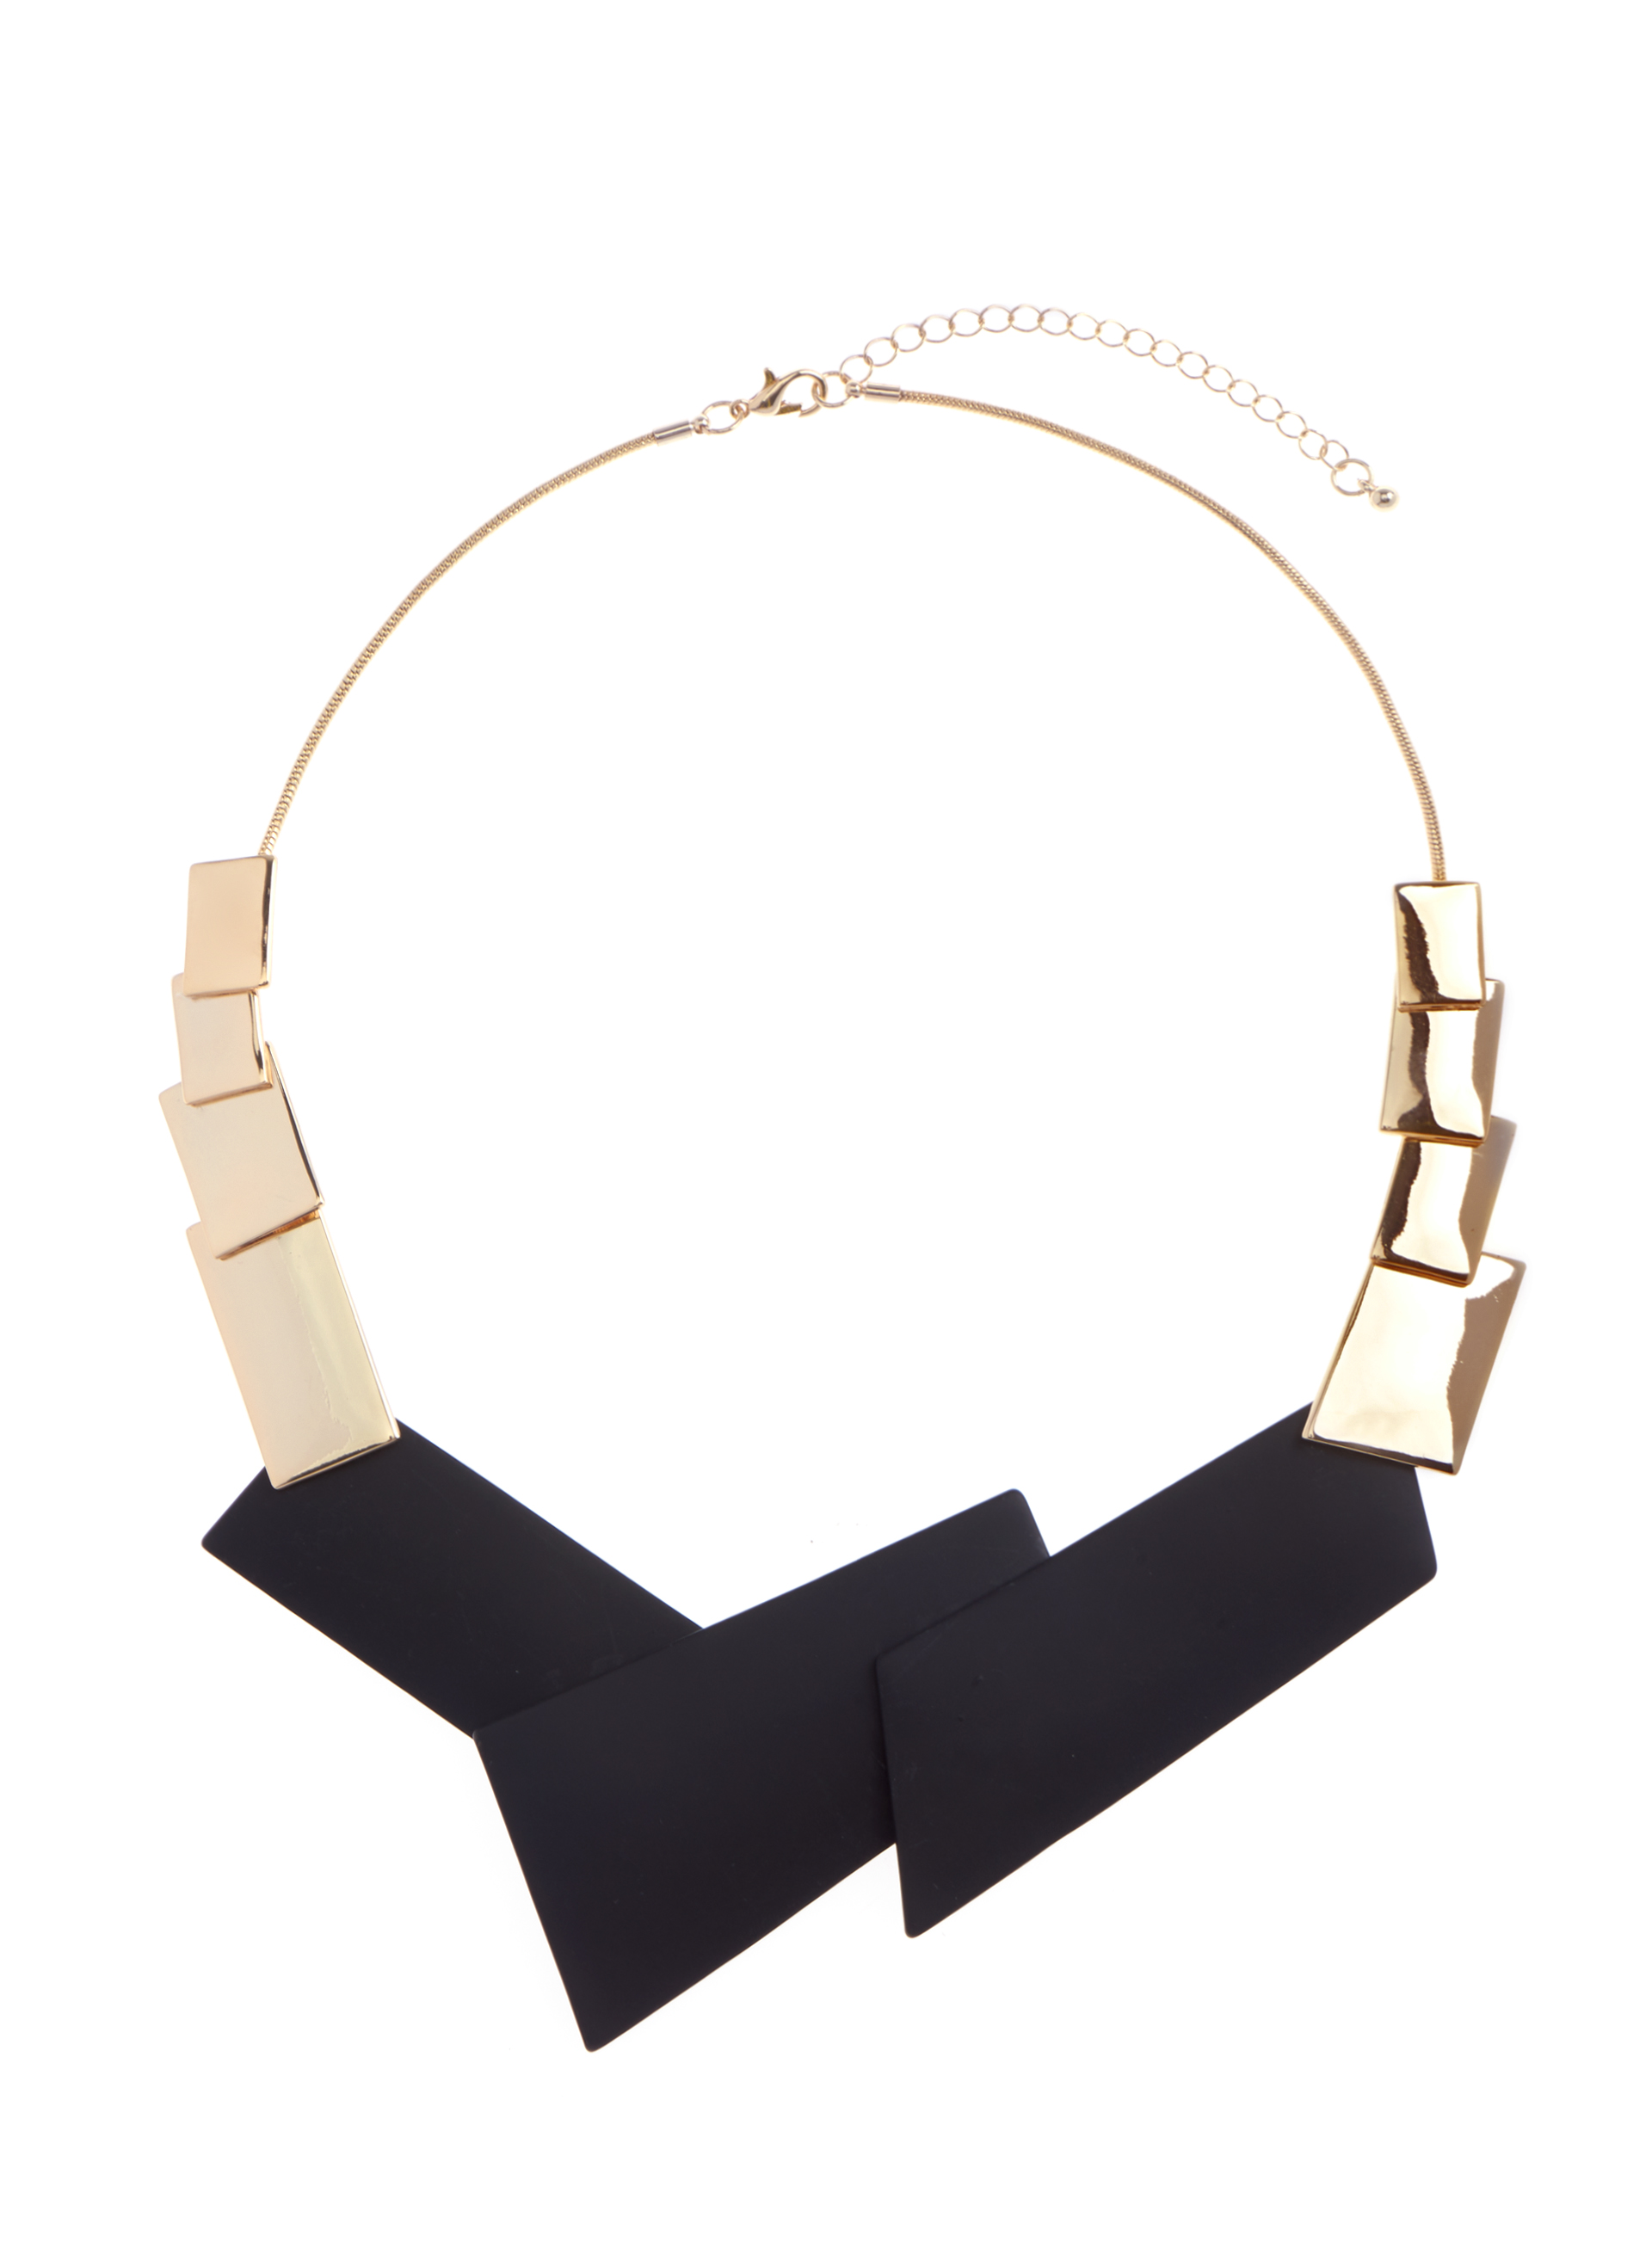 Geometric Overlapping Bib Necklace, Black, hi-res